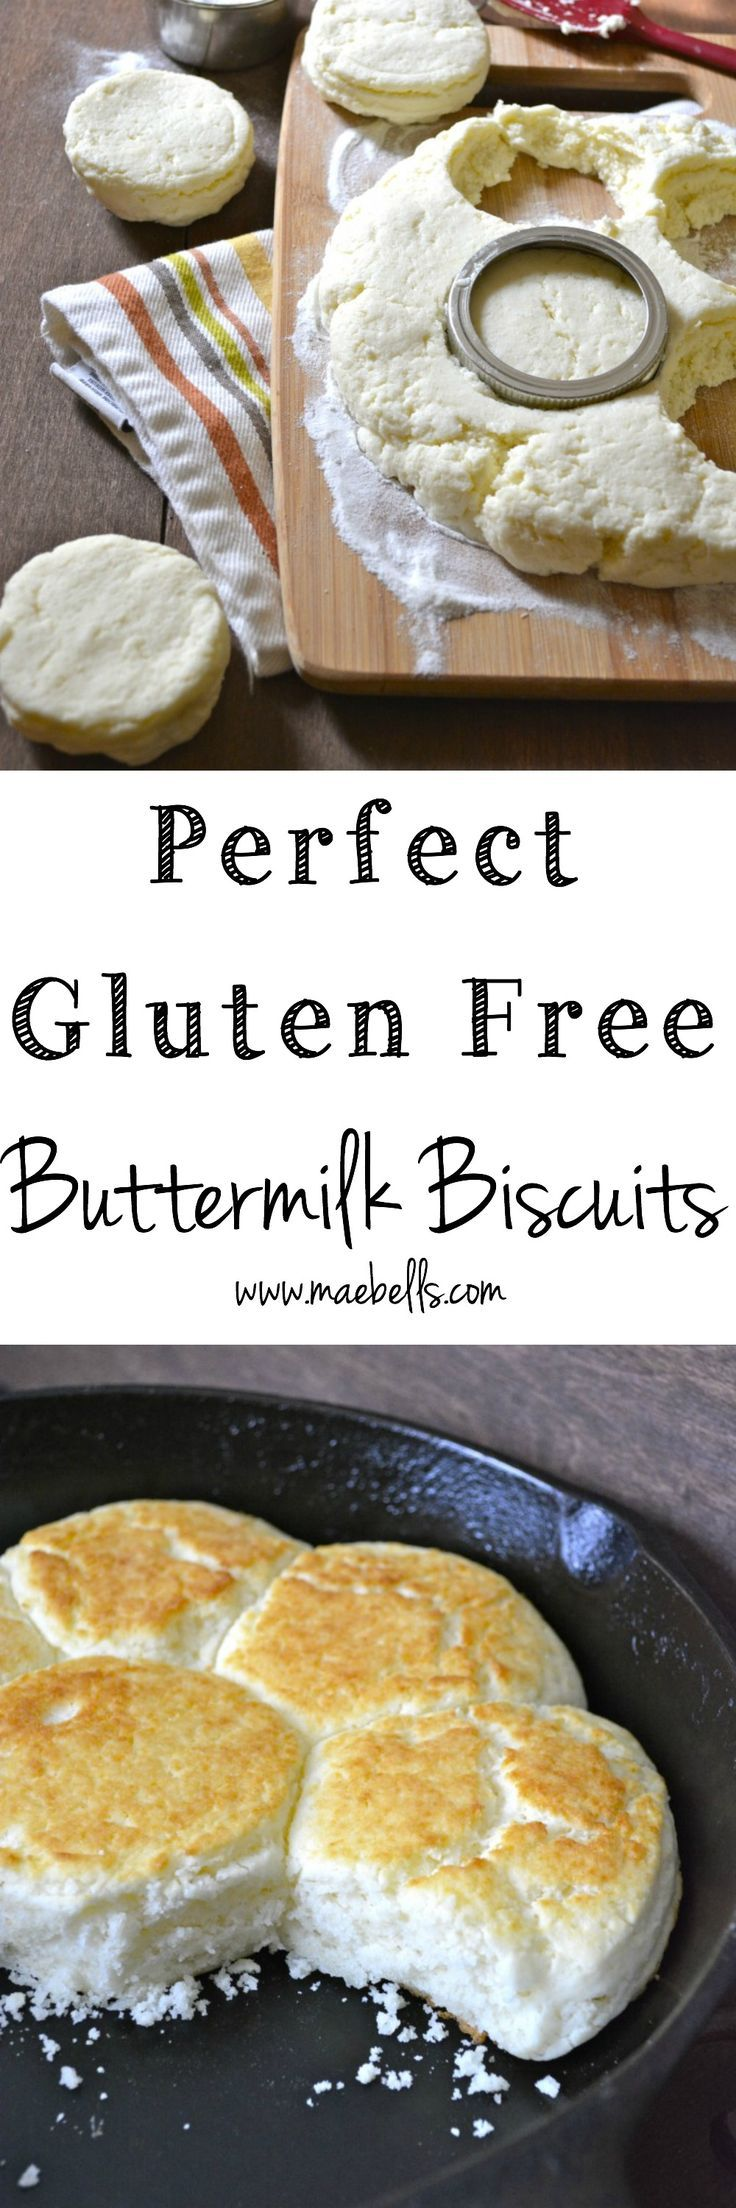 Perfect Gluten Free Buttermilk Biscuits, a no fail recipe! Great for any dinner!